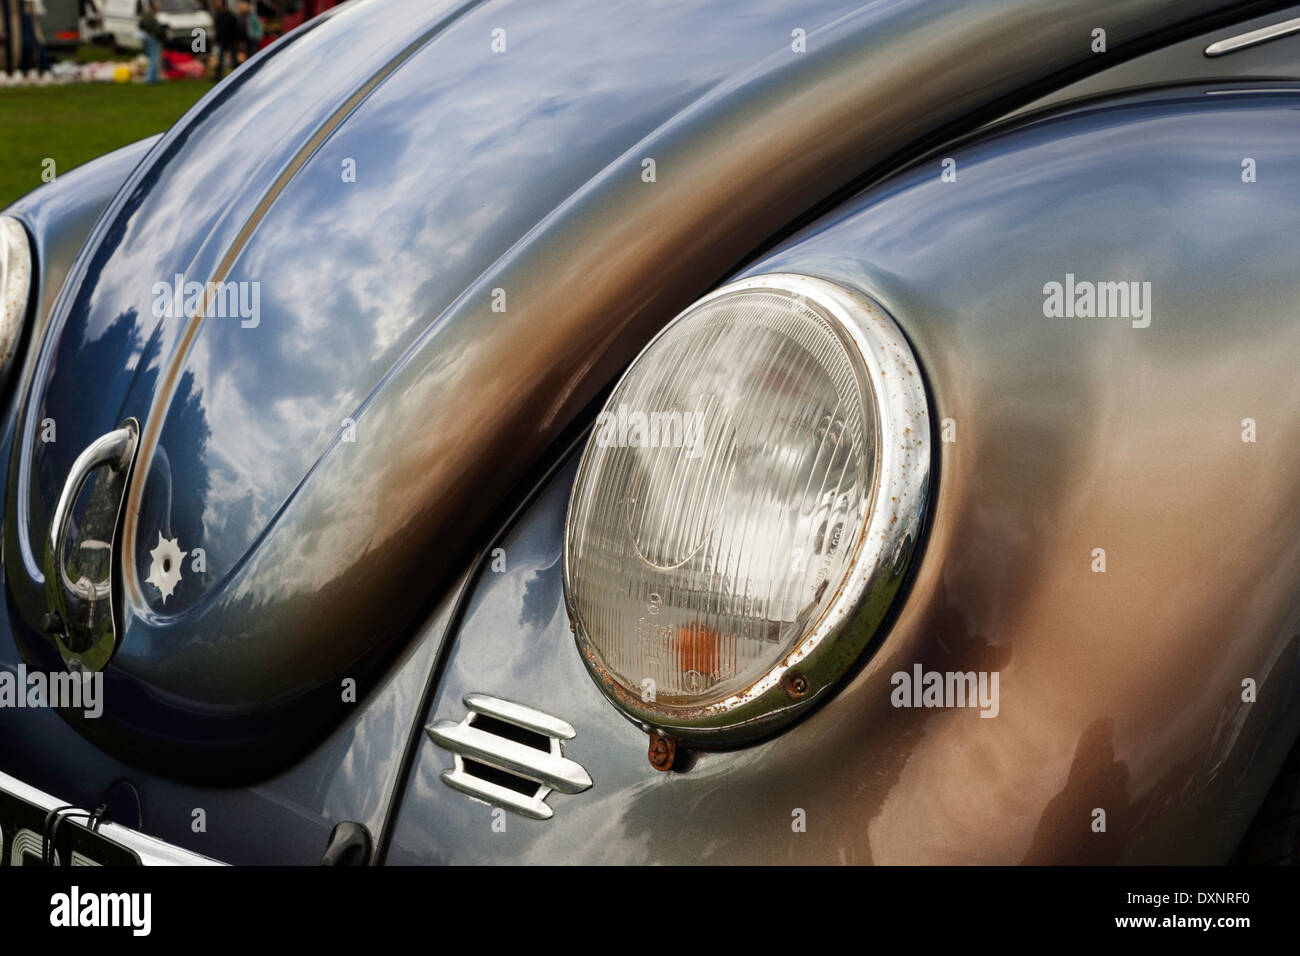 Two tone Beetle and bullet hole. - Stock Image